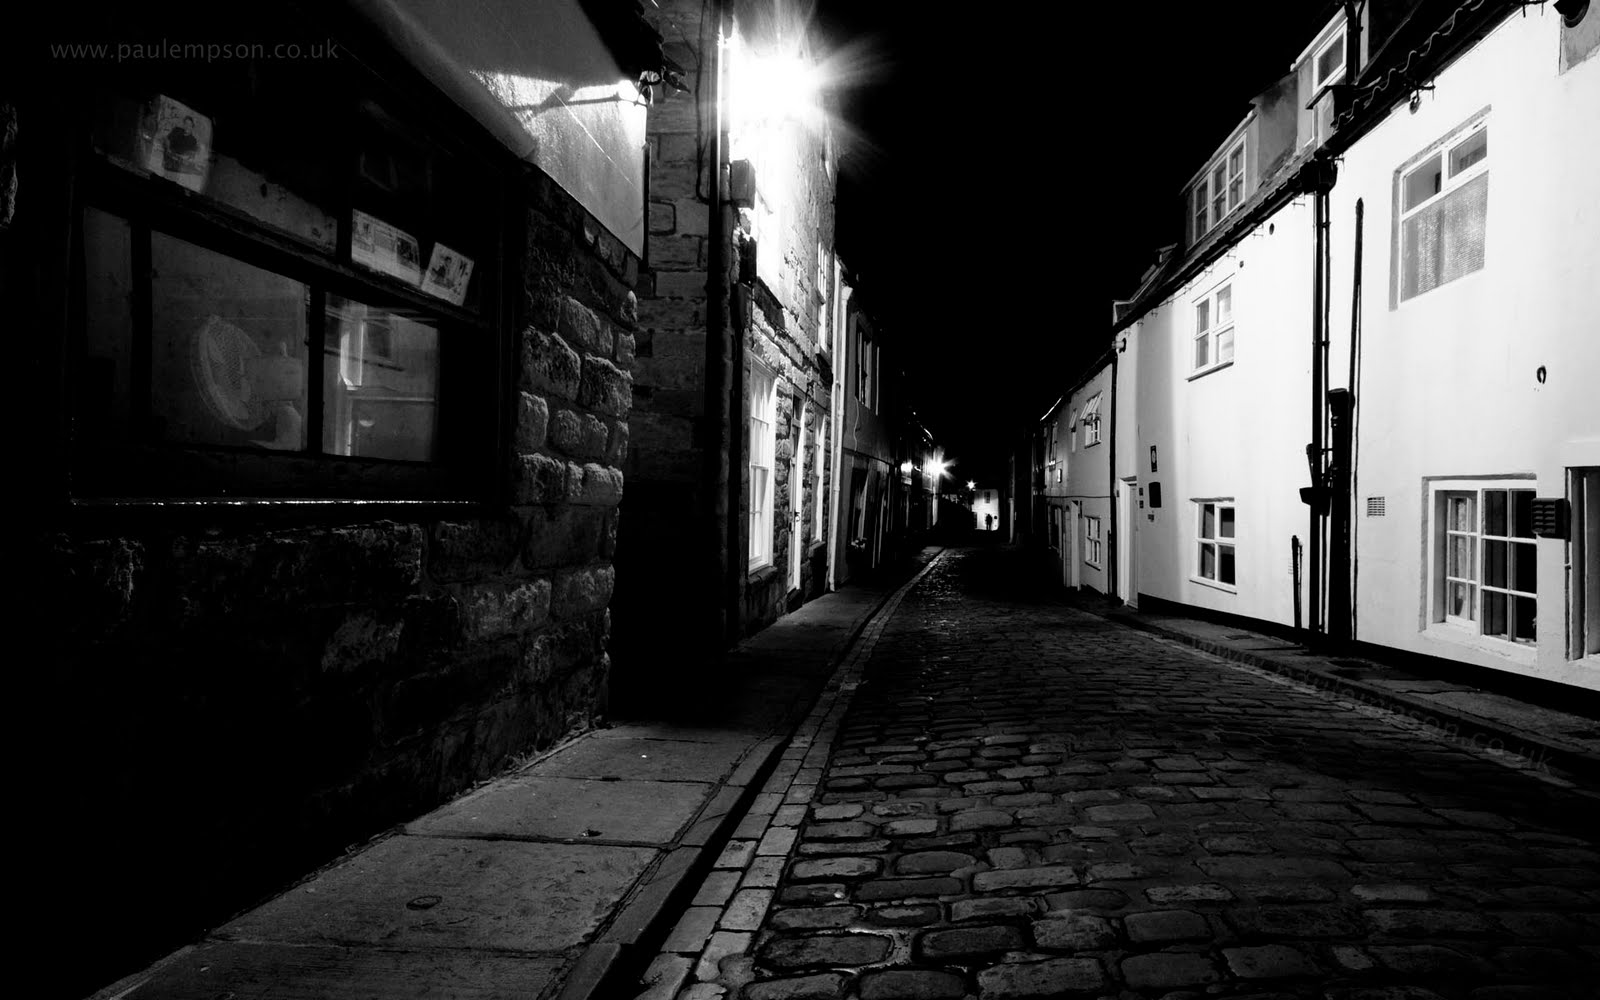 Picture Of A City Street At Night Free Download Wallpaper